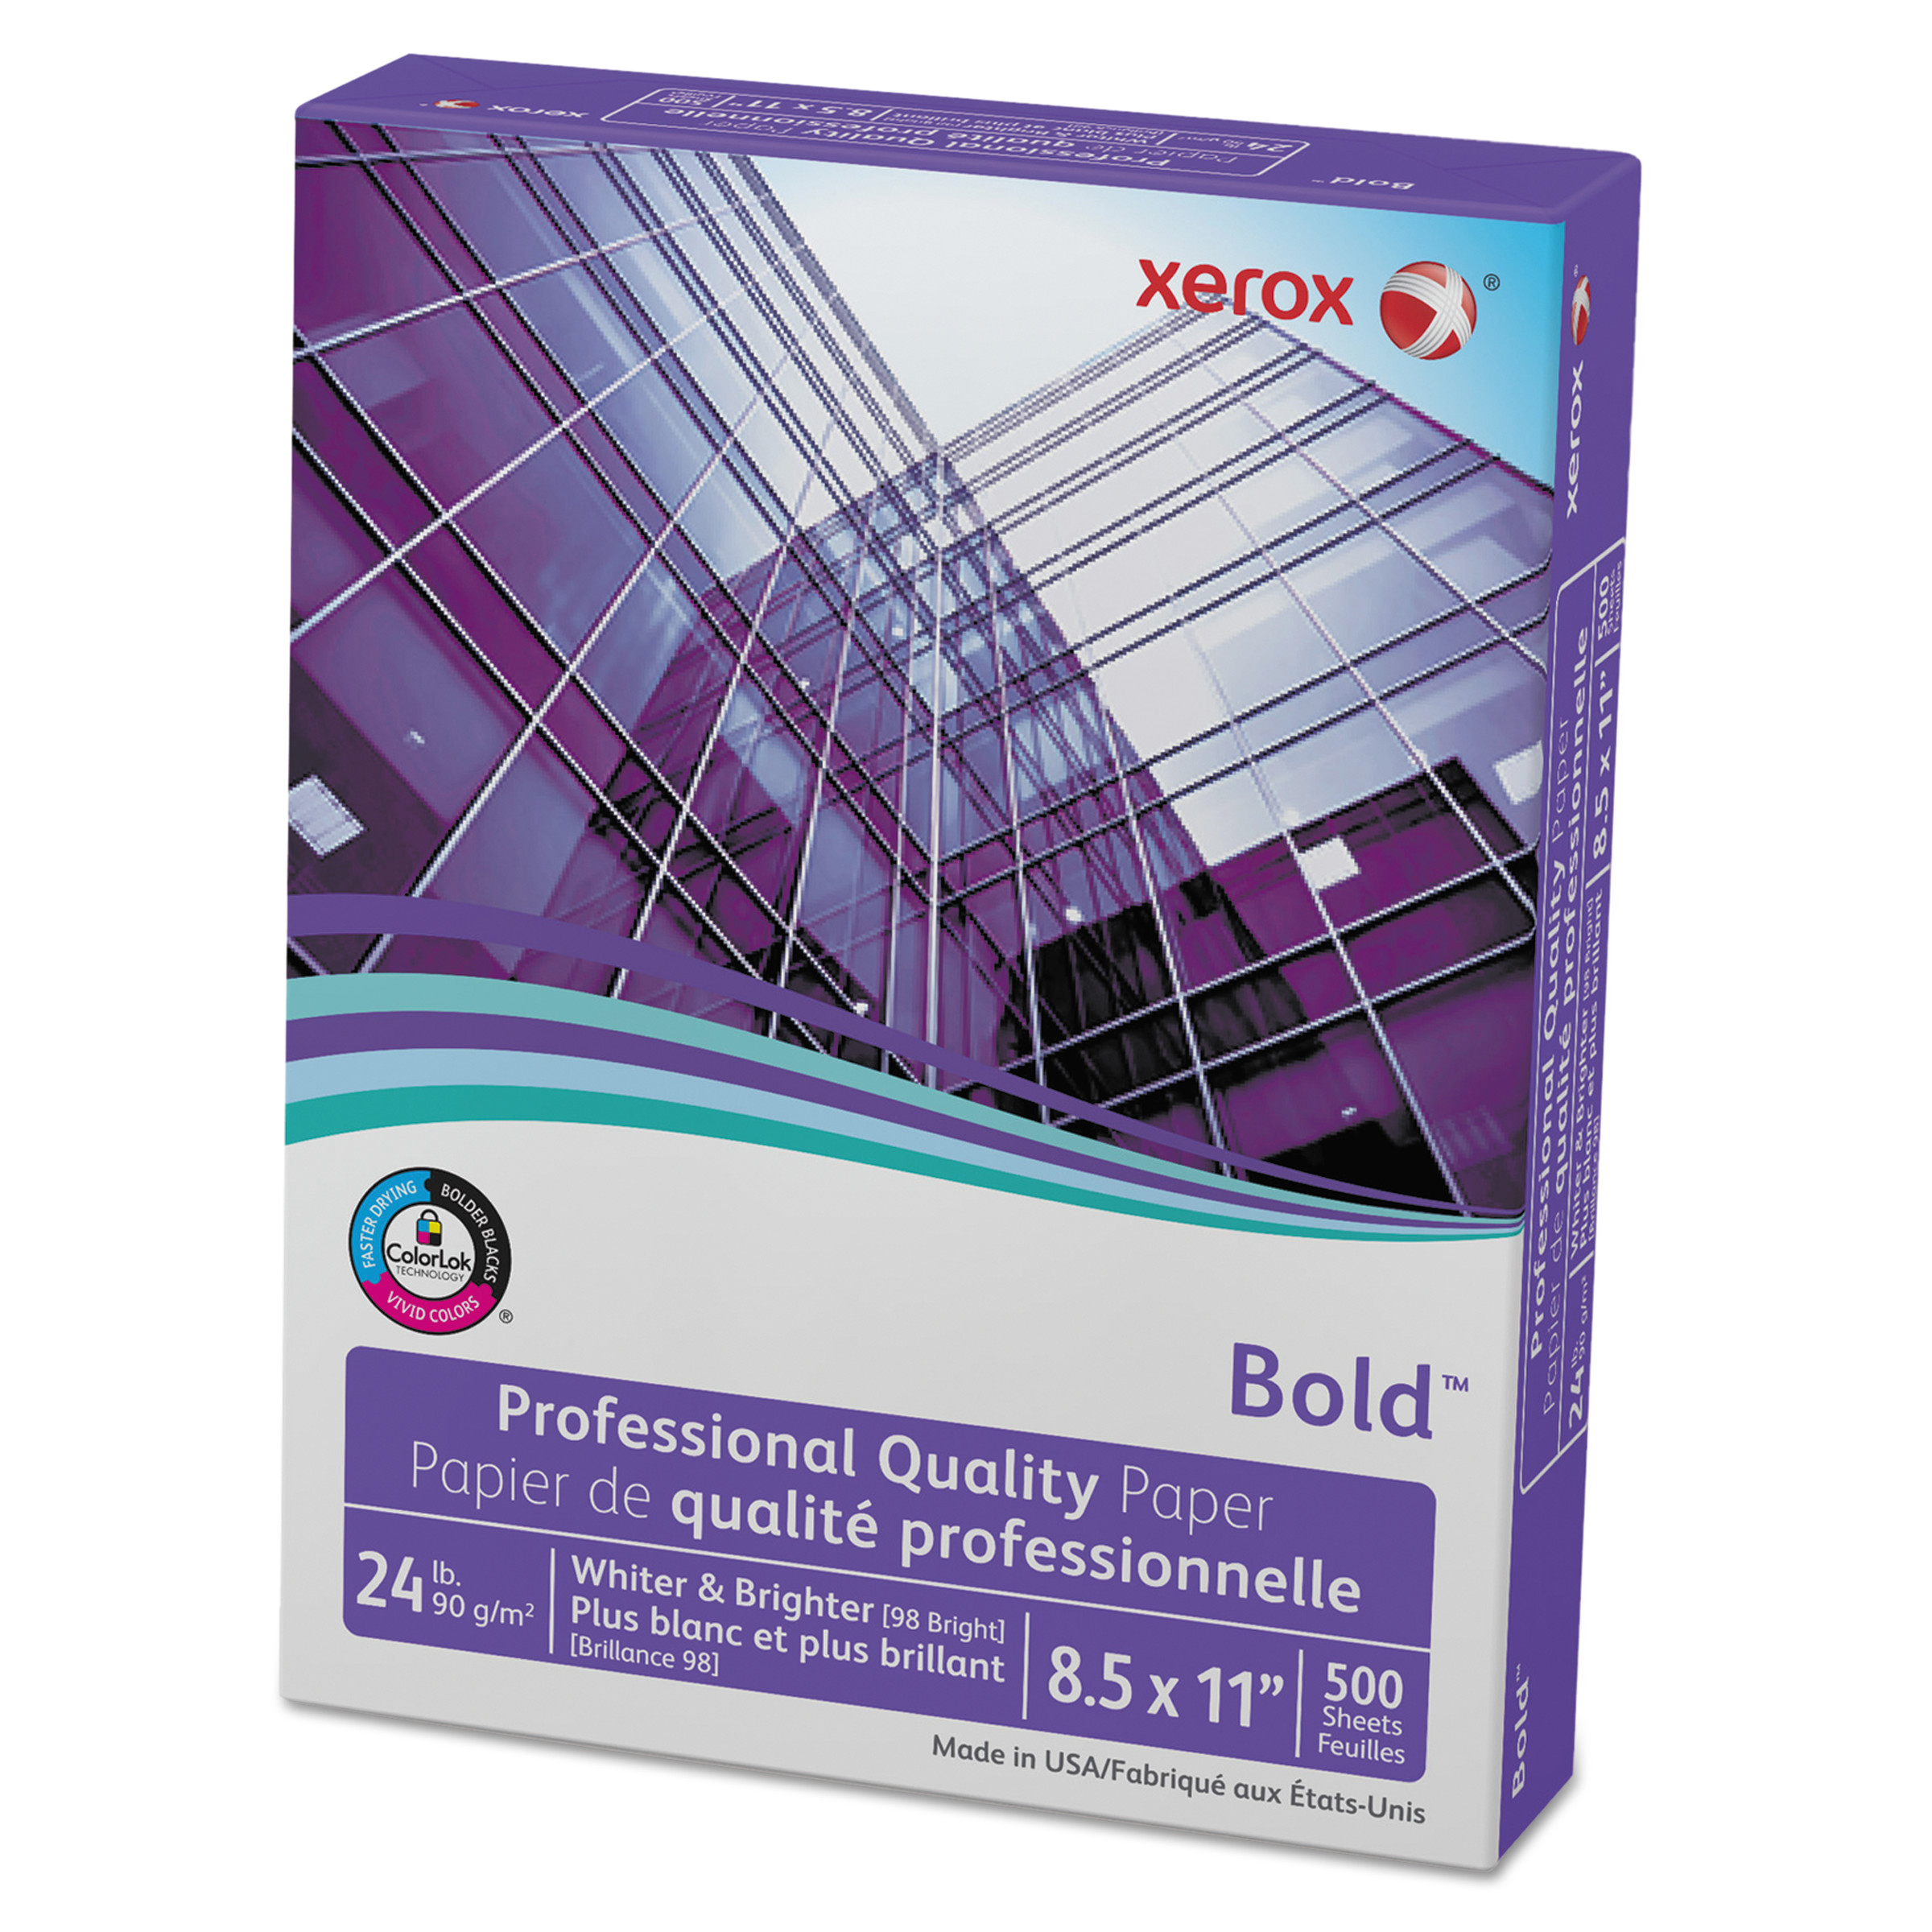 Xerox Bold Professional Quality Paper, 98 Bright, 8 1/2 x 11, White, 500 Sheets/RM -XER3R13038